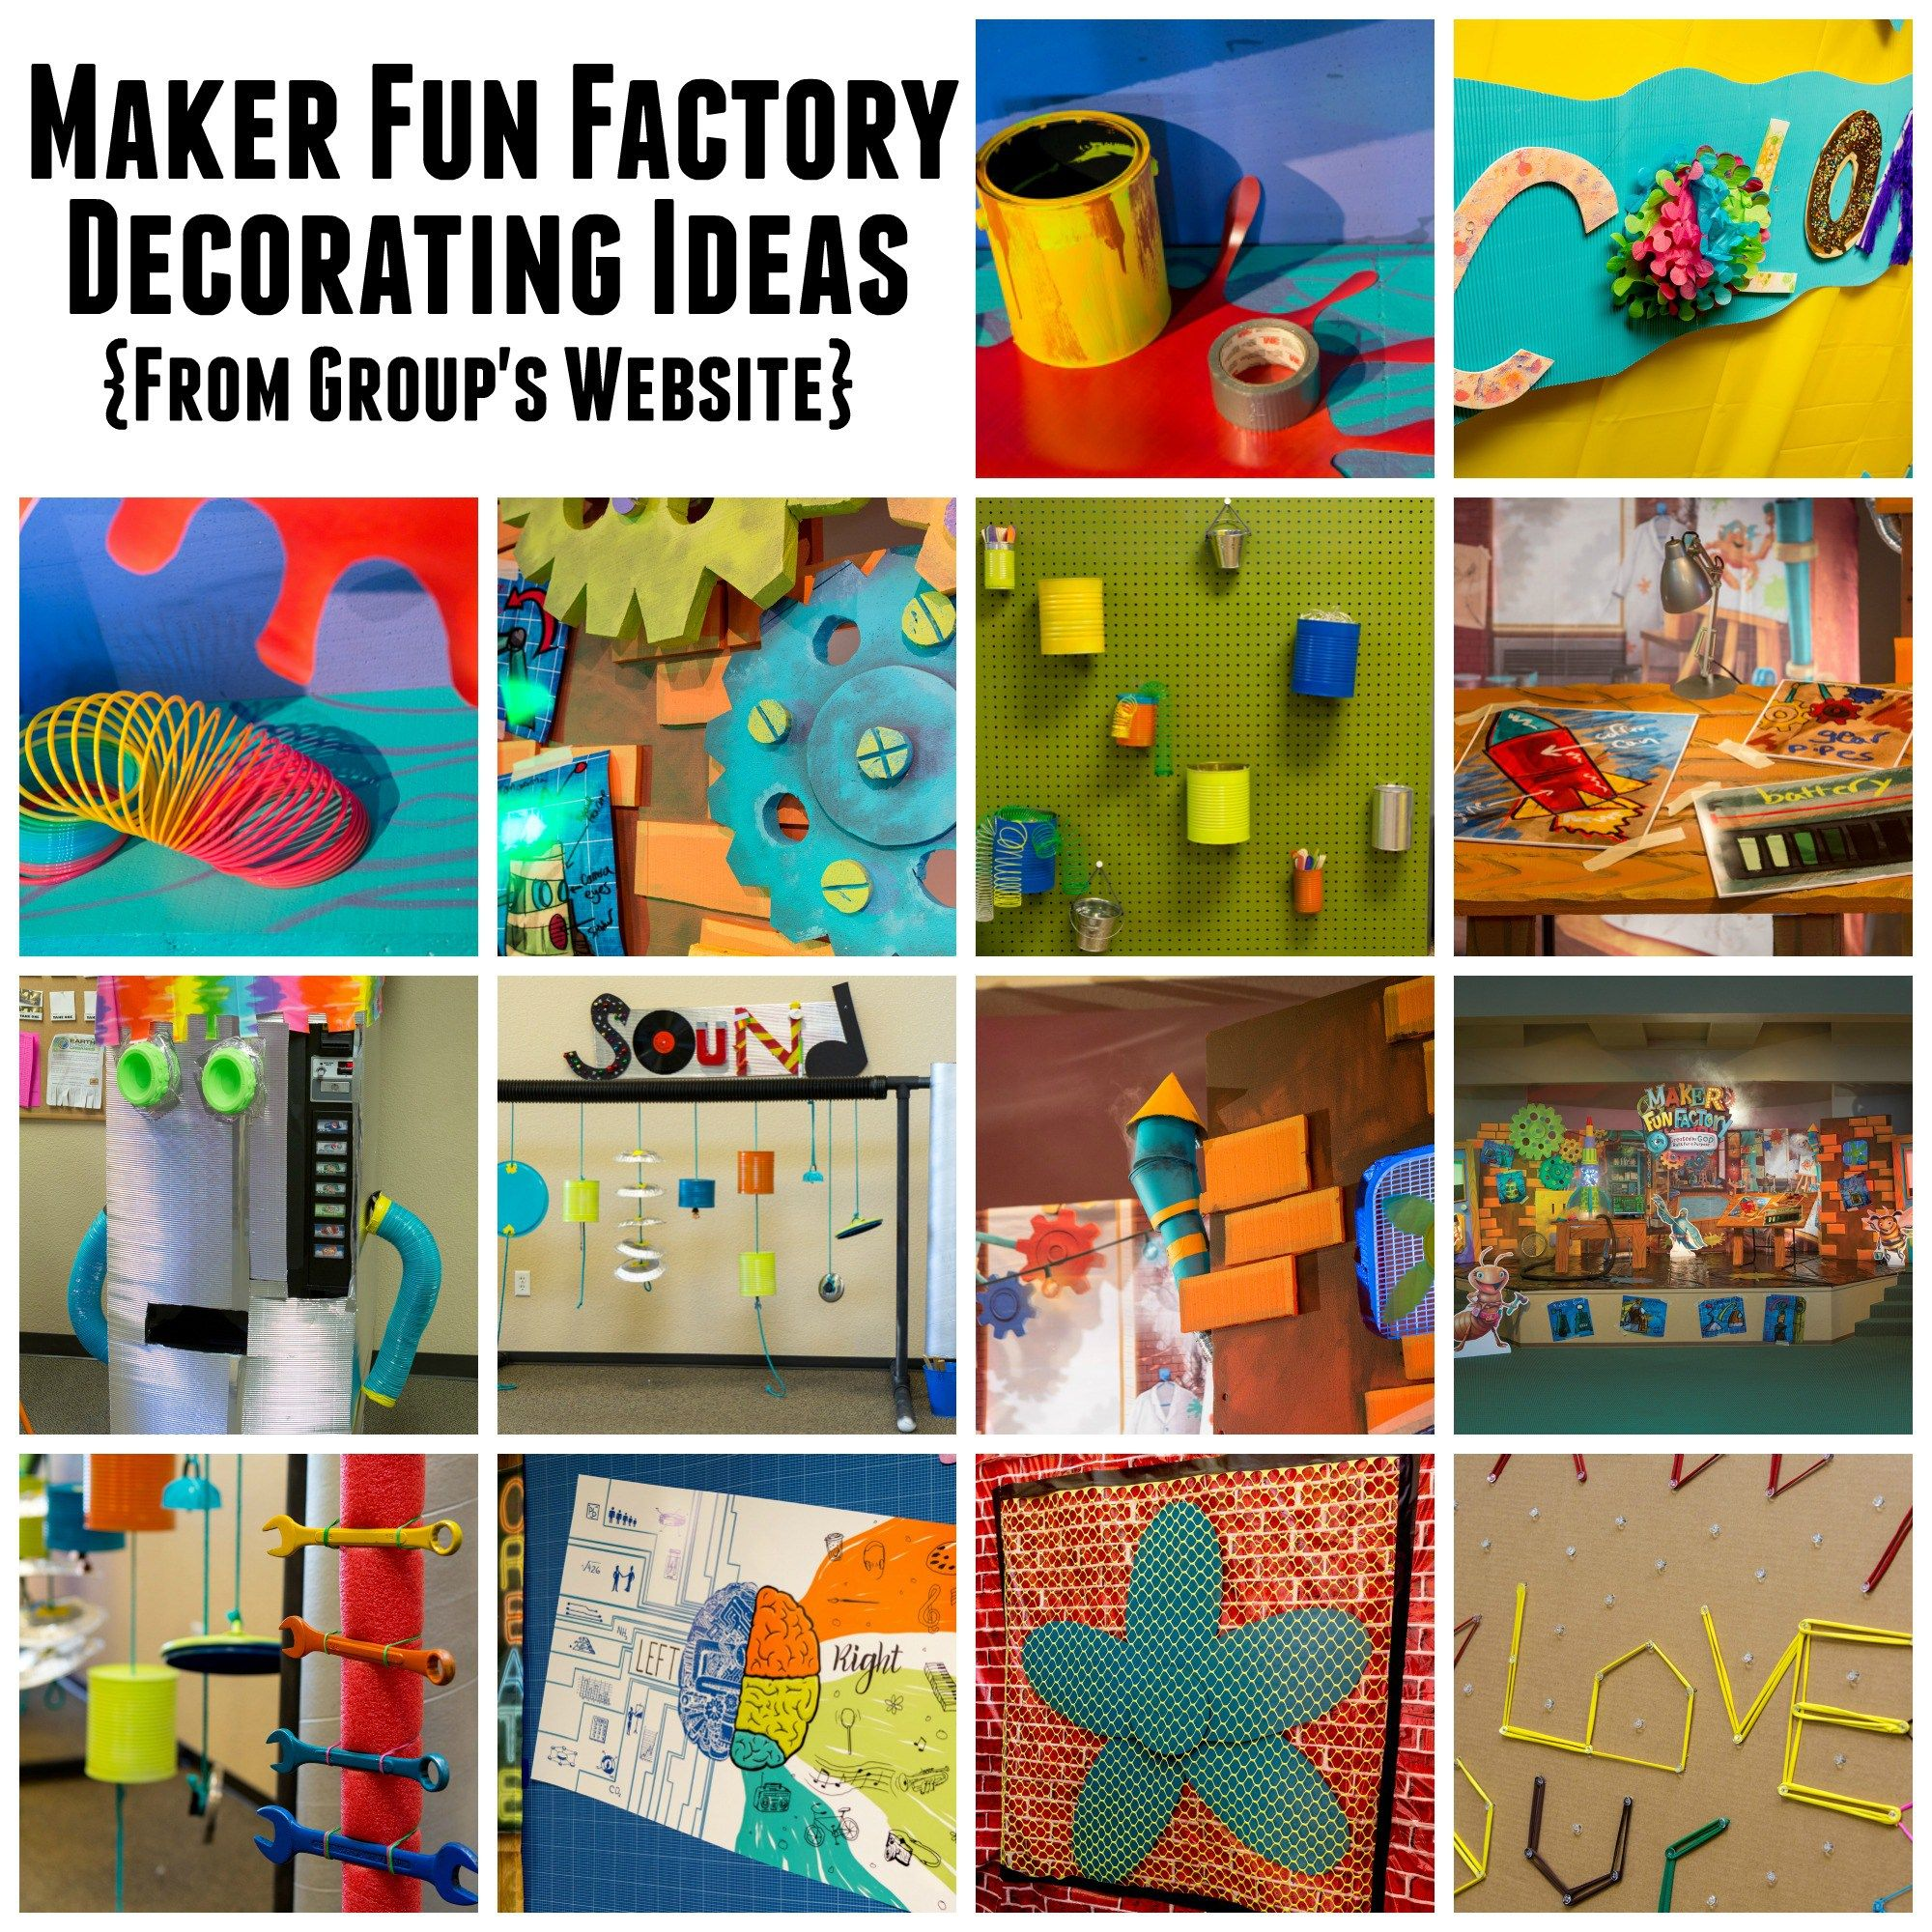 Group Publishing VBS 2017 - Maker Fun Factory - Decorating